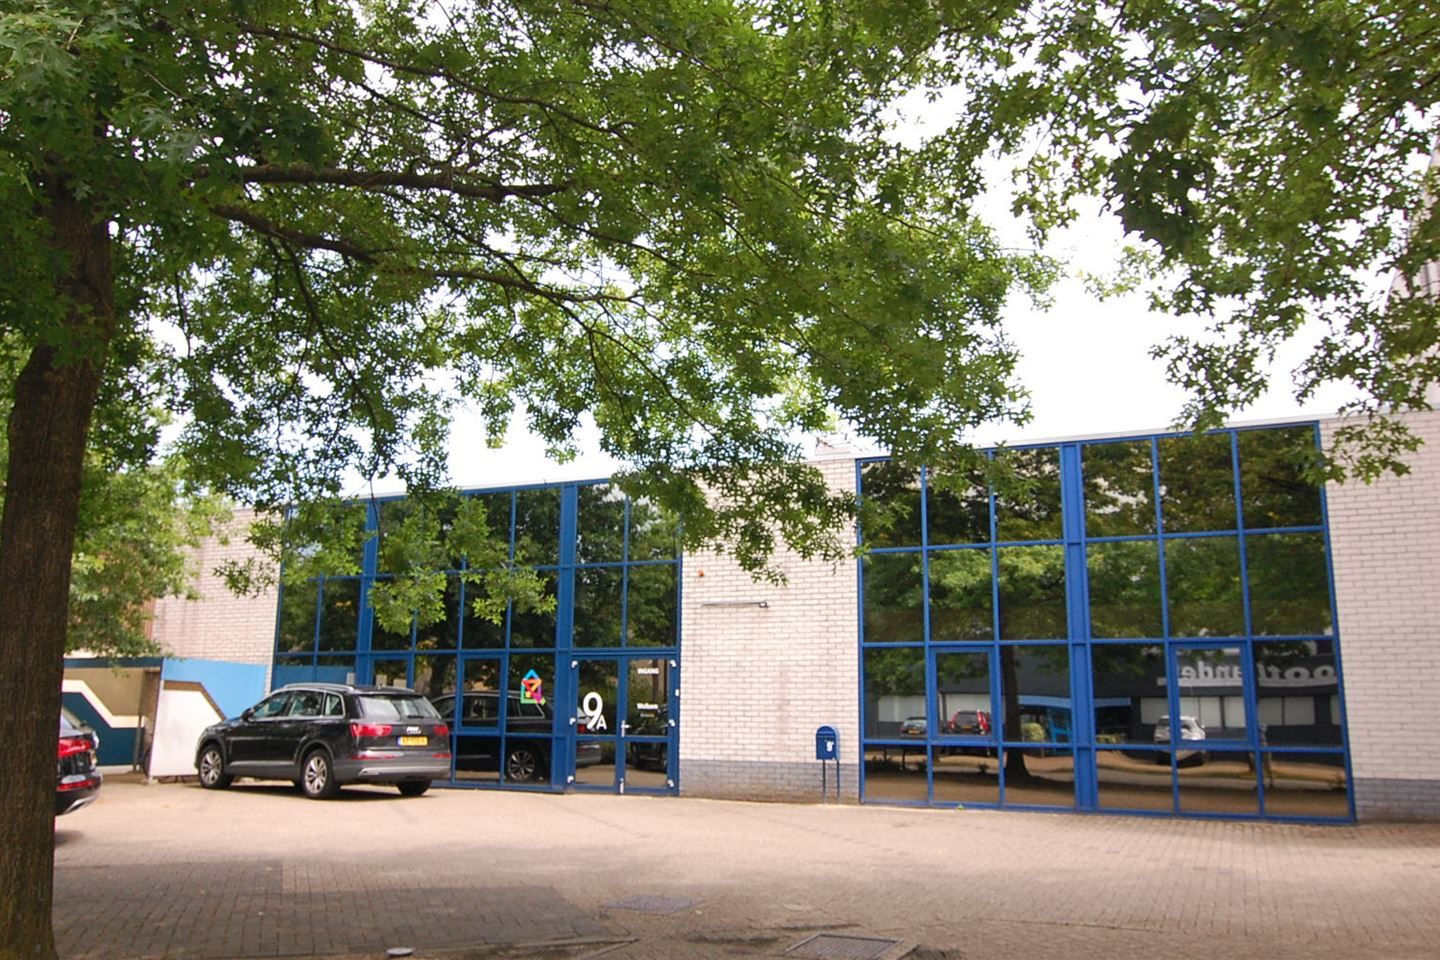 View photo 1 of Wilmersdorf 9 A